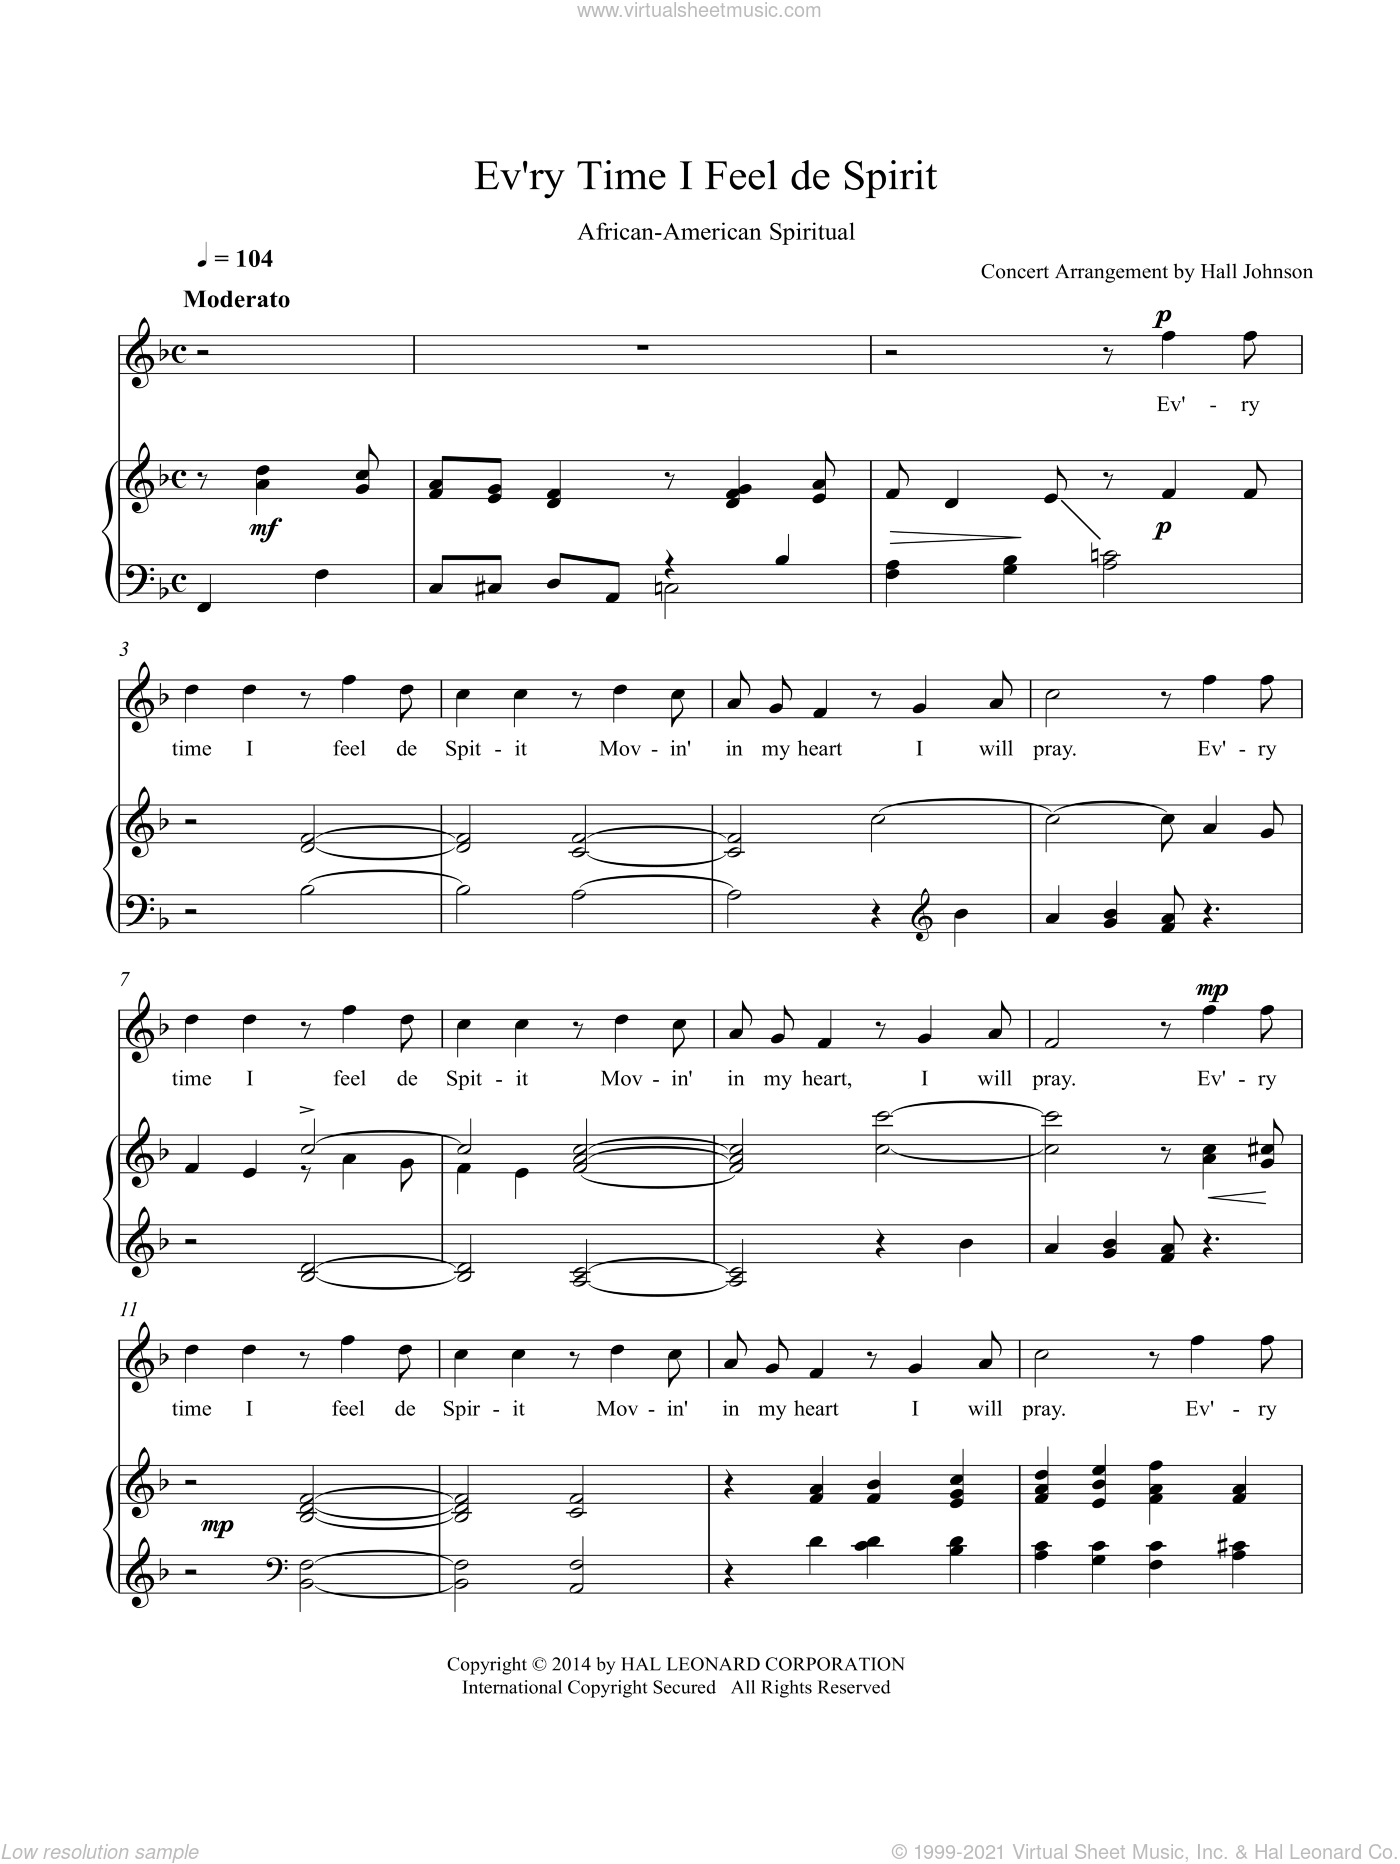 Ev'ry Time I Feel de Spirit (F) sheet music for voice and piano by Hall Johnson. Score Image Preview.